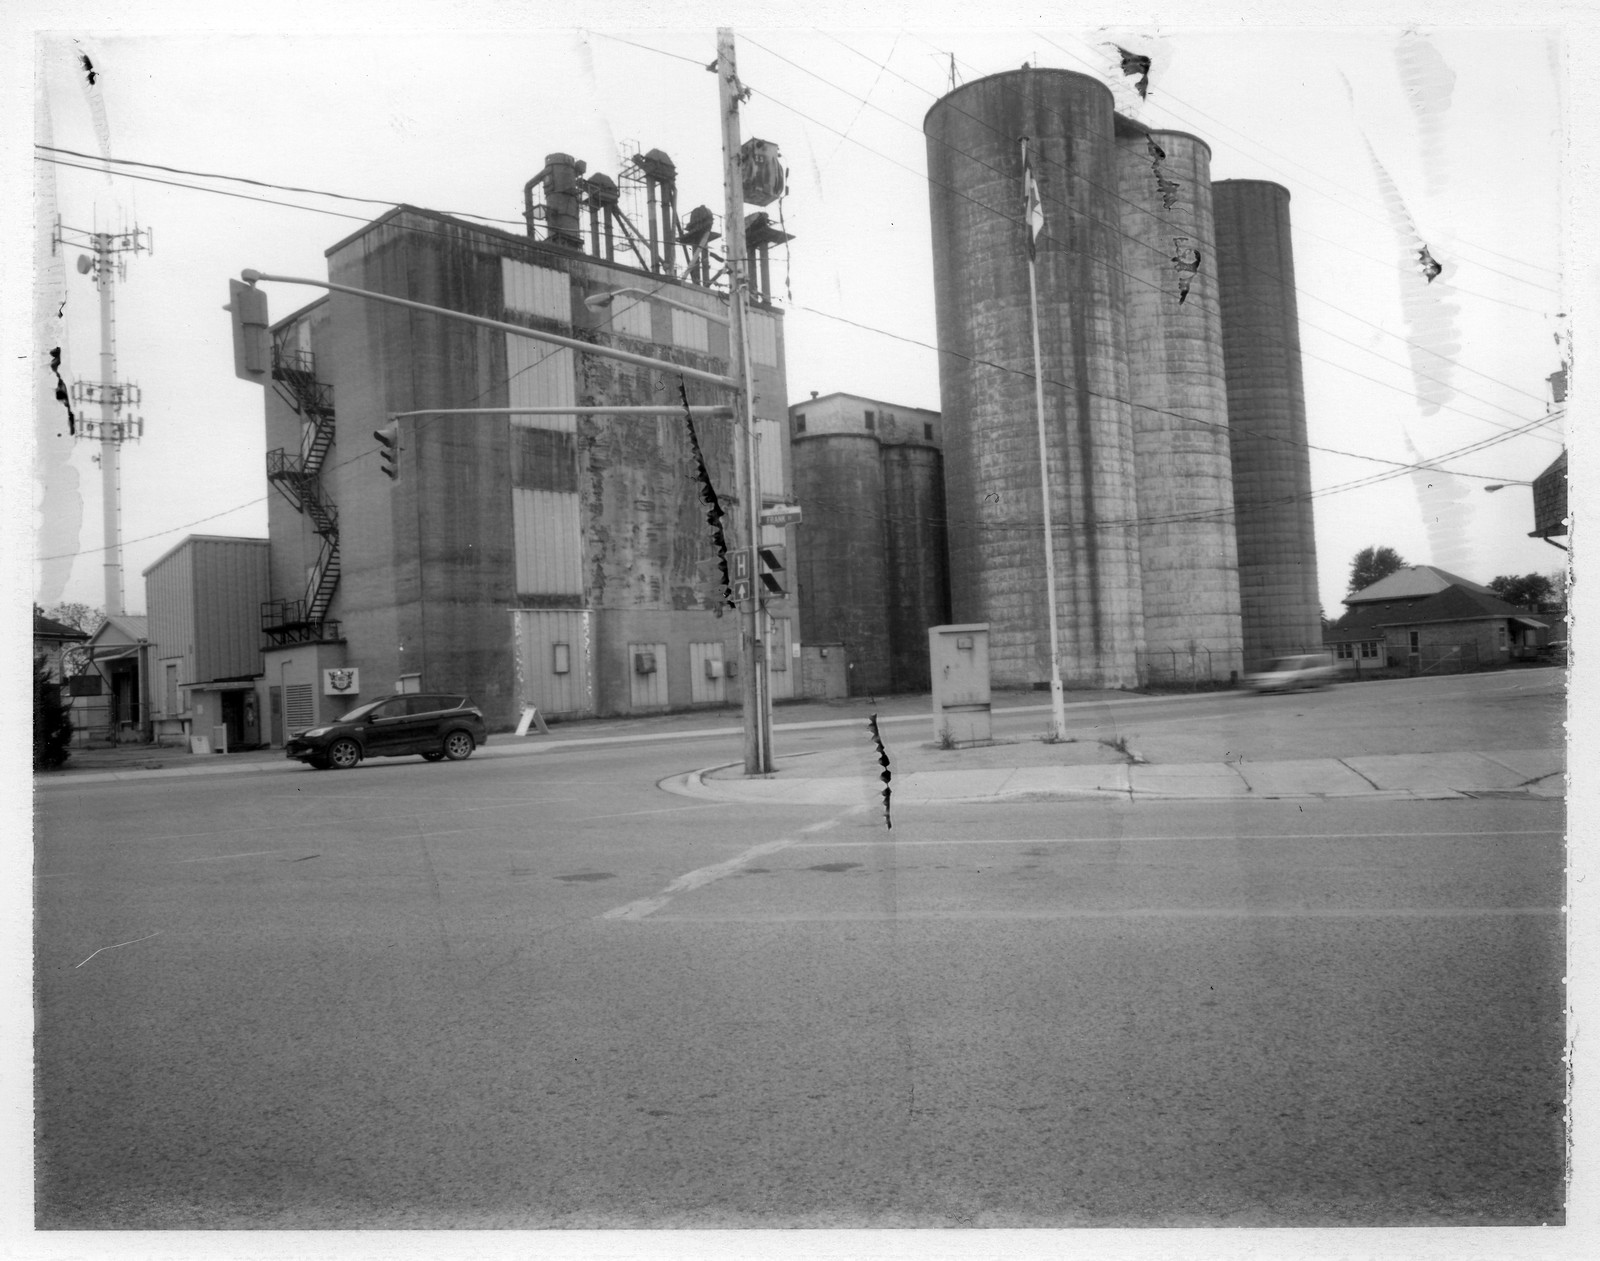 The Strathroy Brewing Company